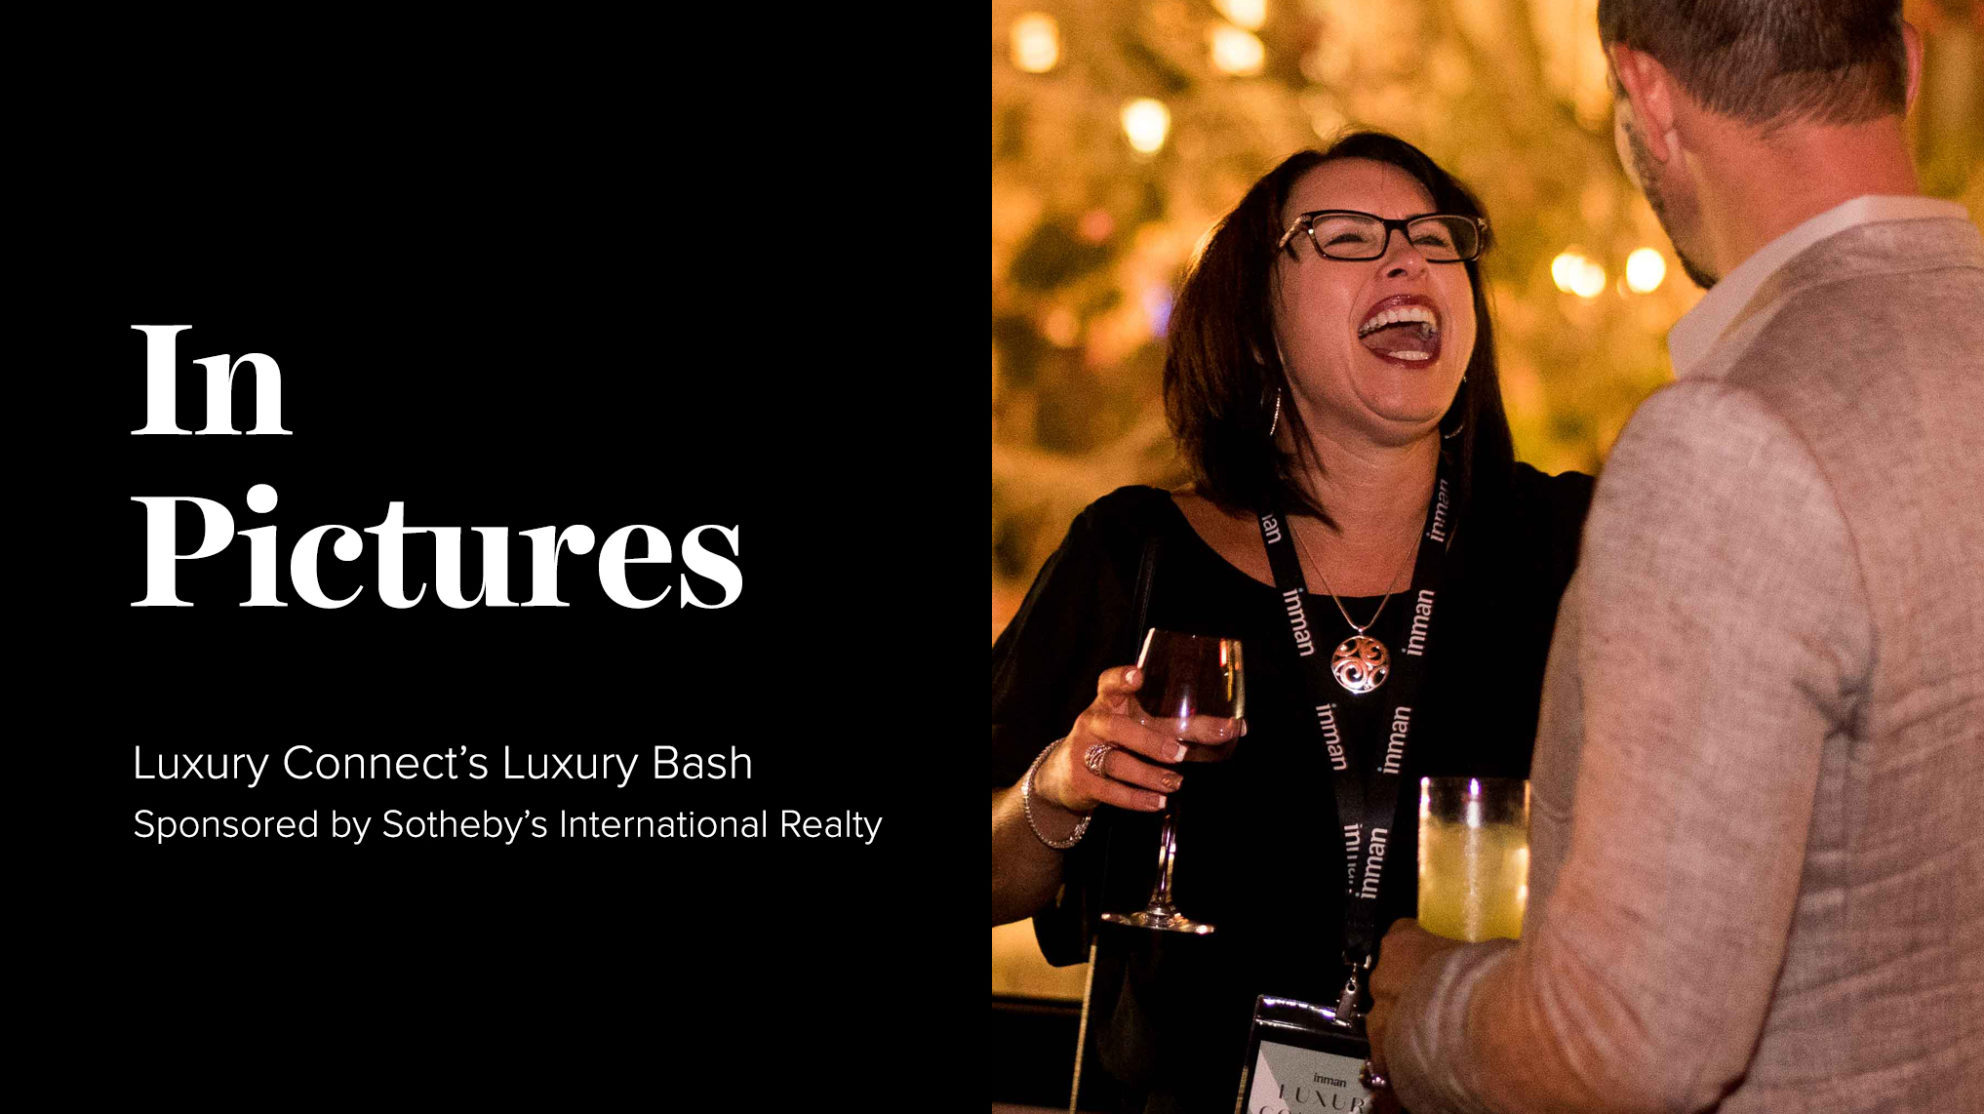 In Pictures: Luxury Connect's Luxury Bash